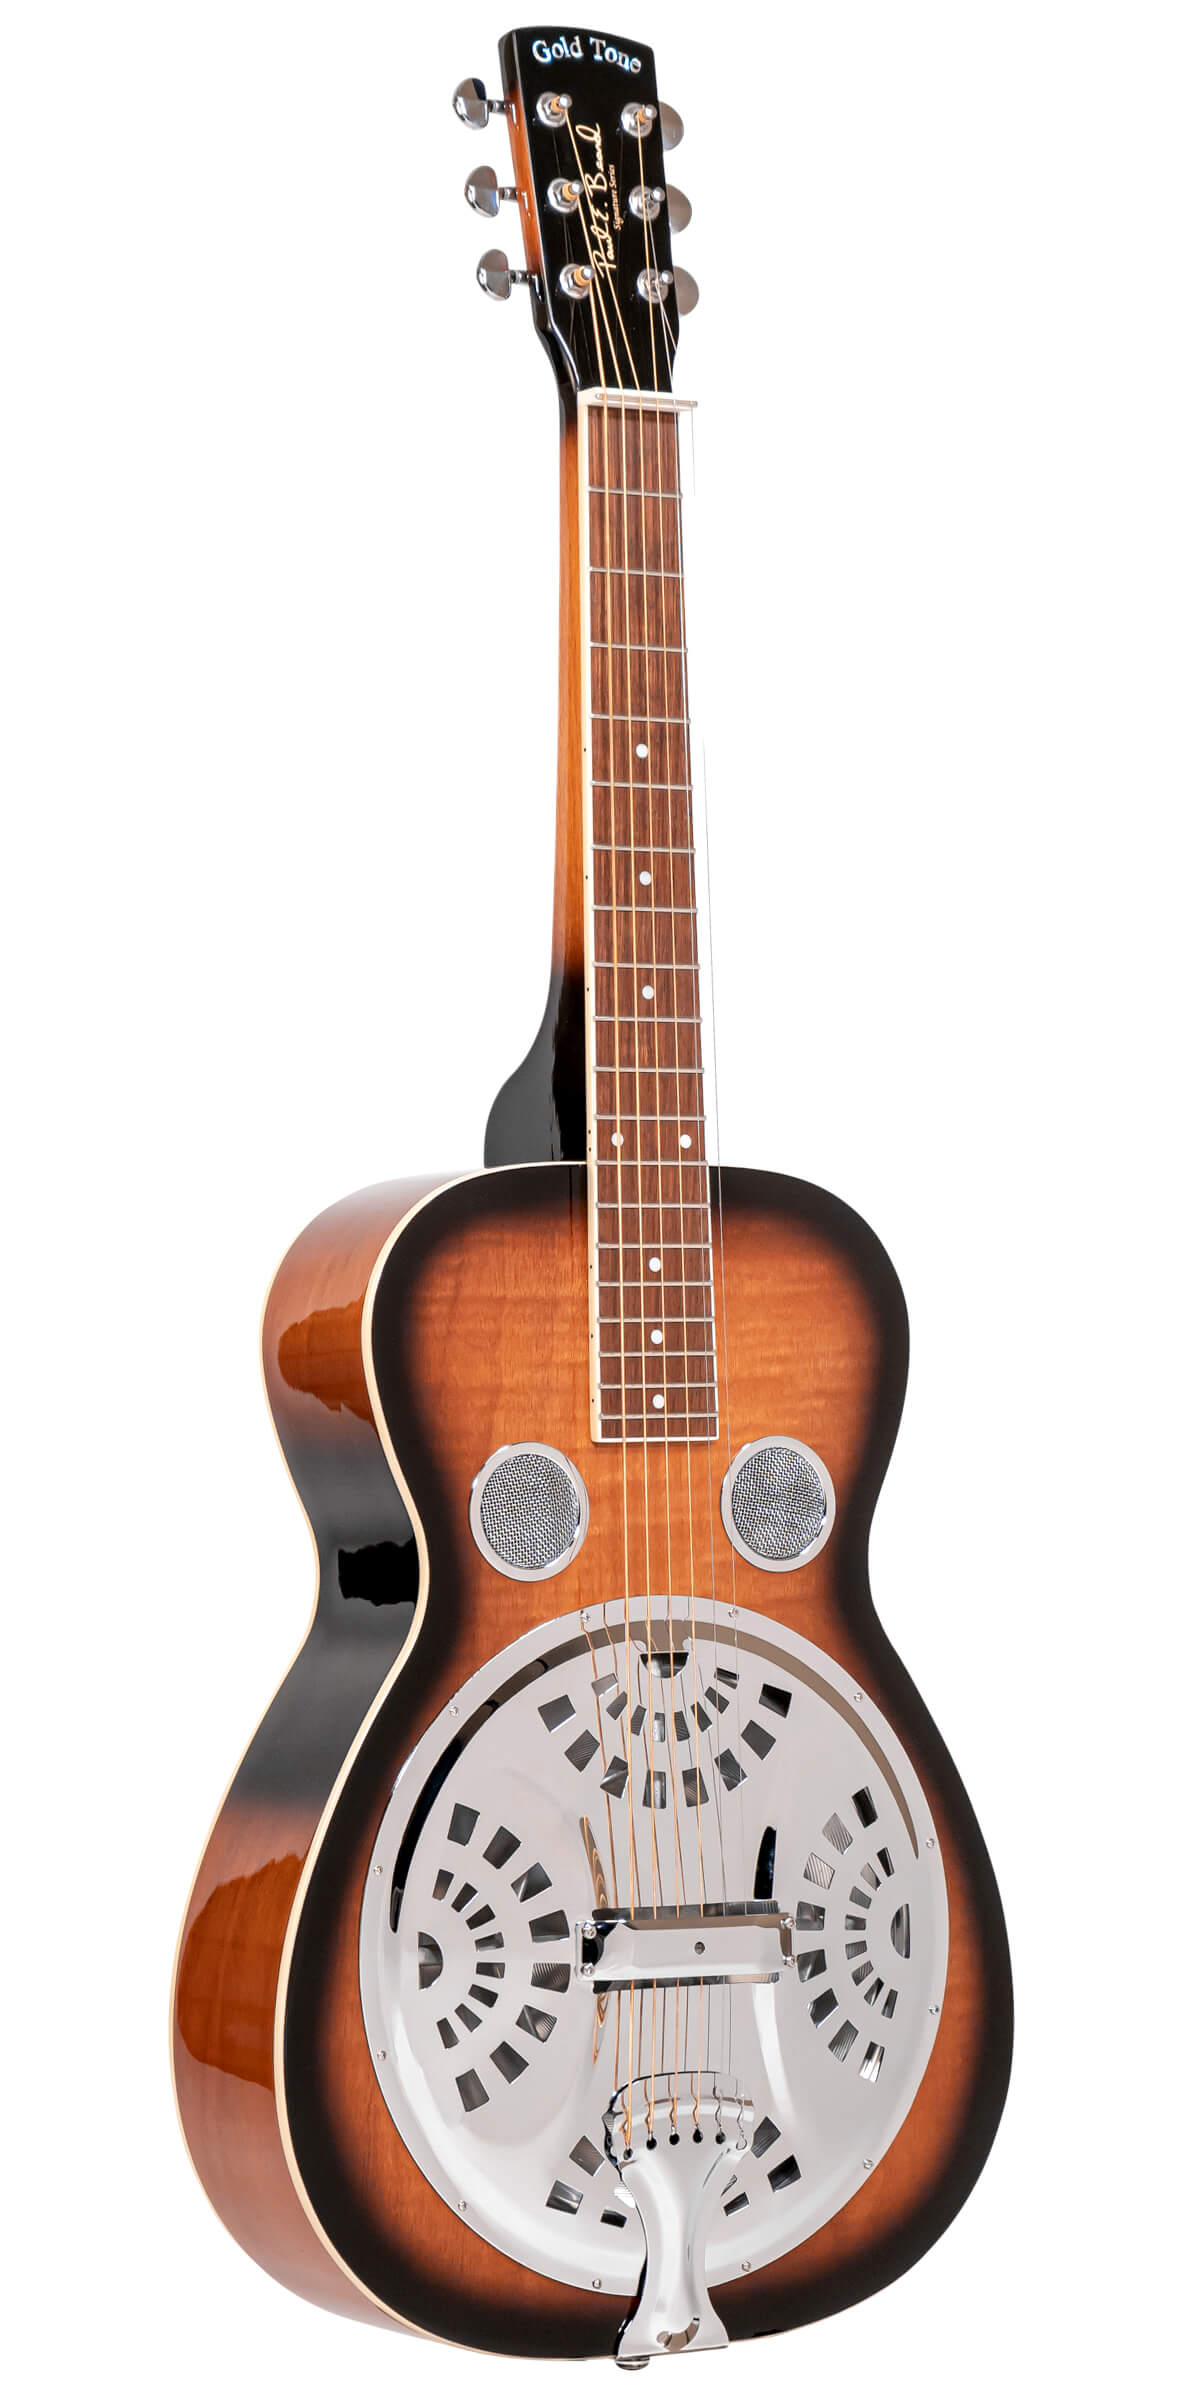 PBS: Paul Beard Squareneck Resonator Guitar